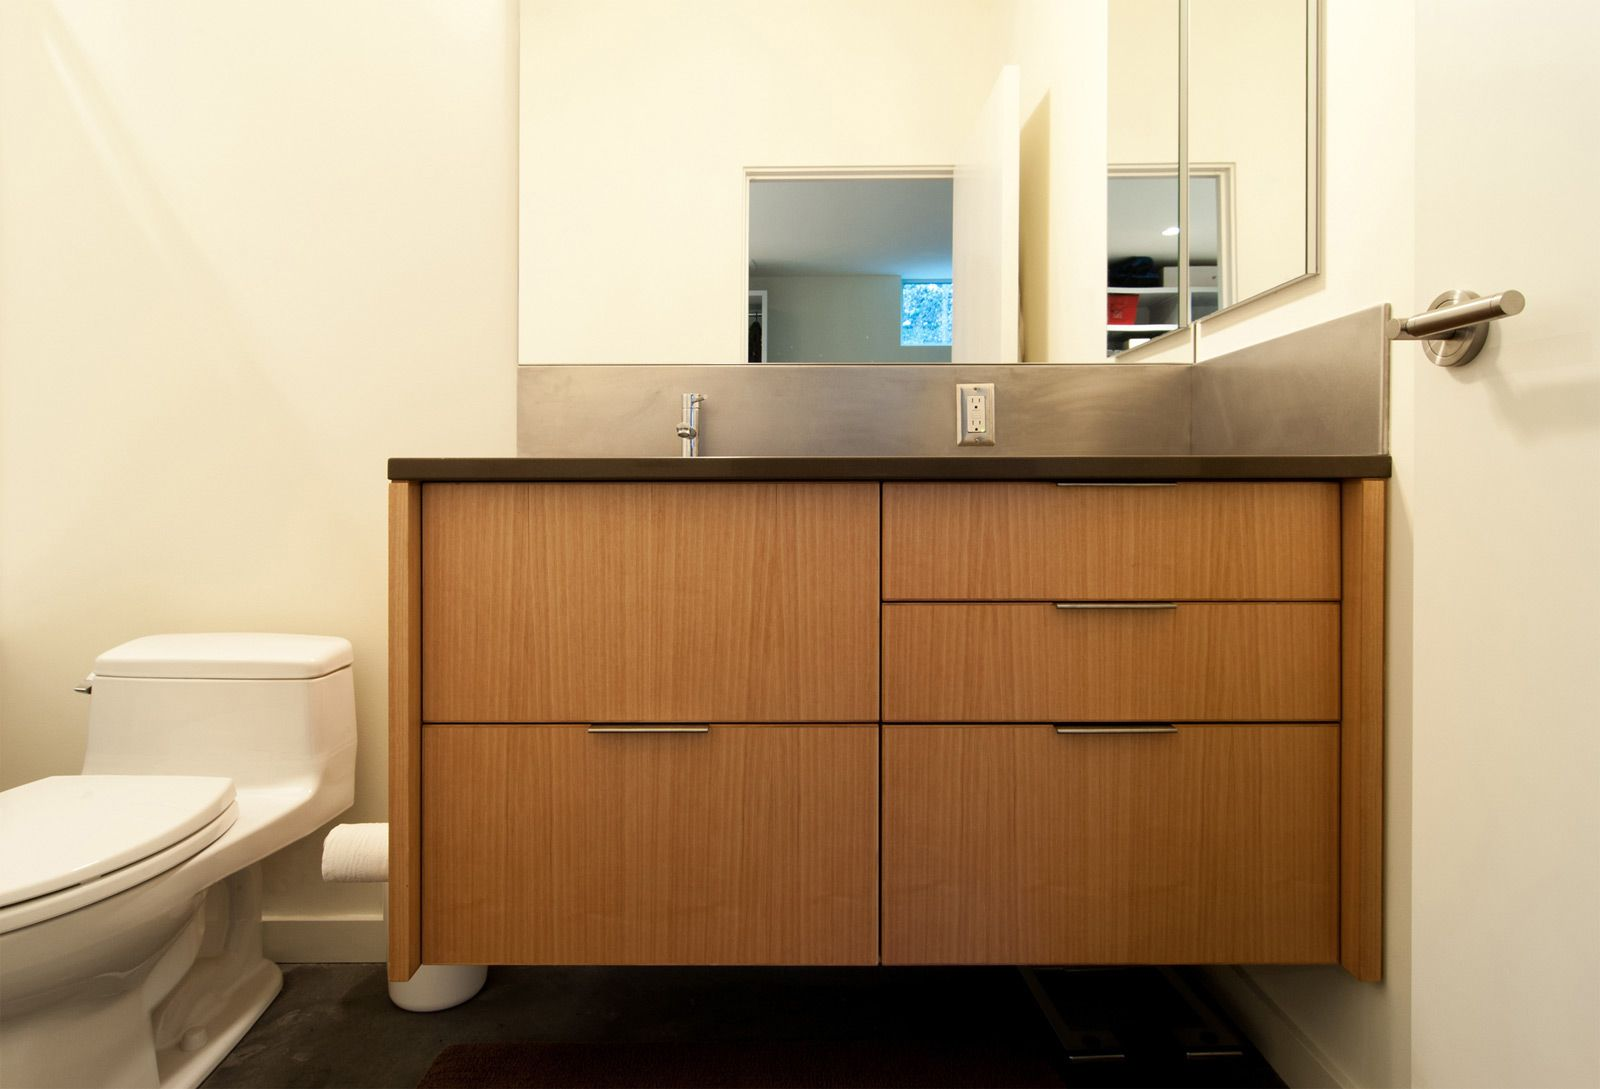 Case Study House Cabinets | Plywood, Plywood cabinets and Plywood ...